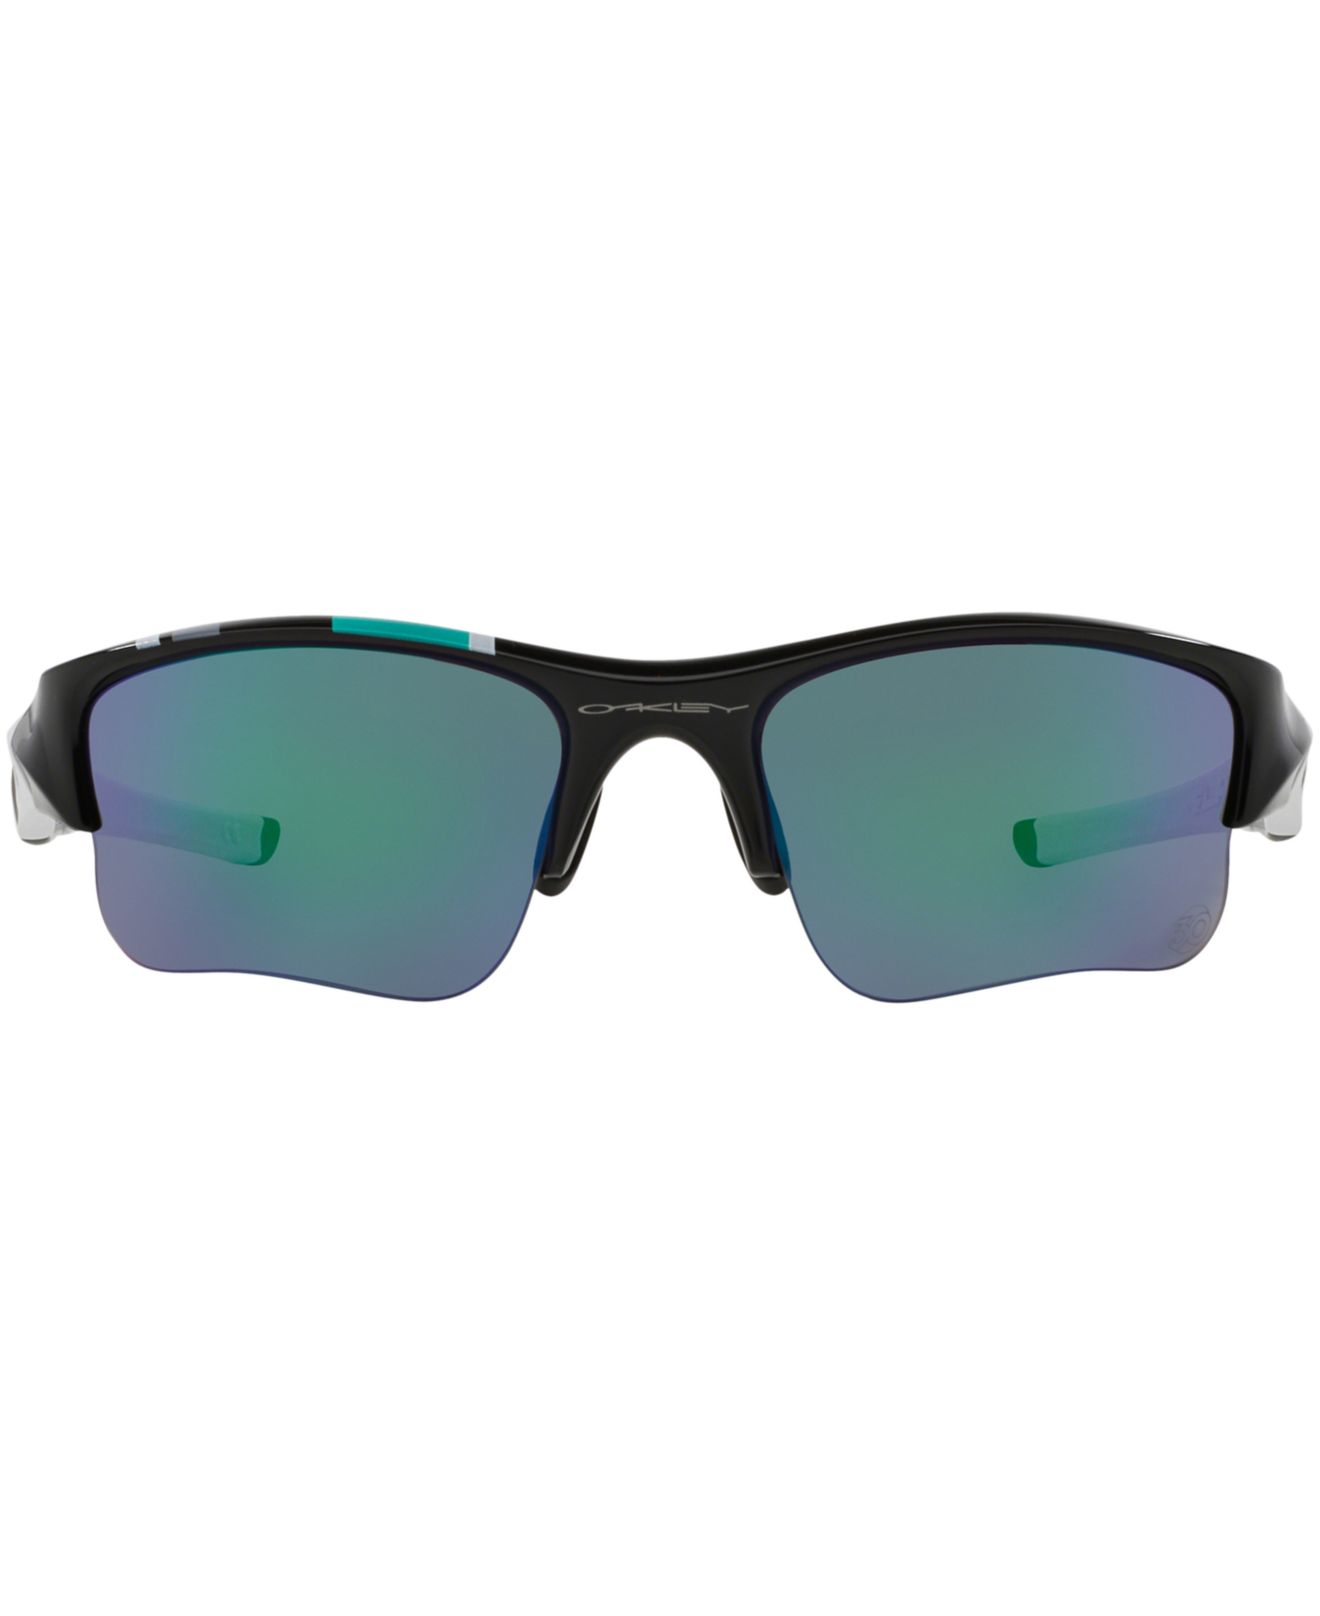 9d44cd3048 Oakley Xlj Flak Jacket Green And Black « Heritage Malta